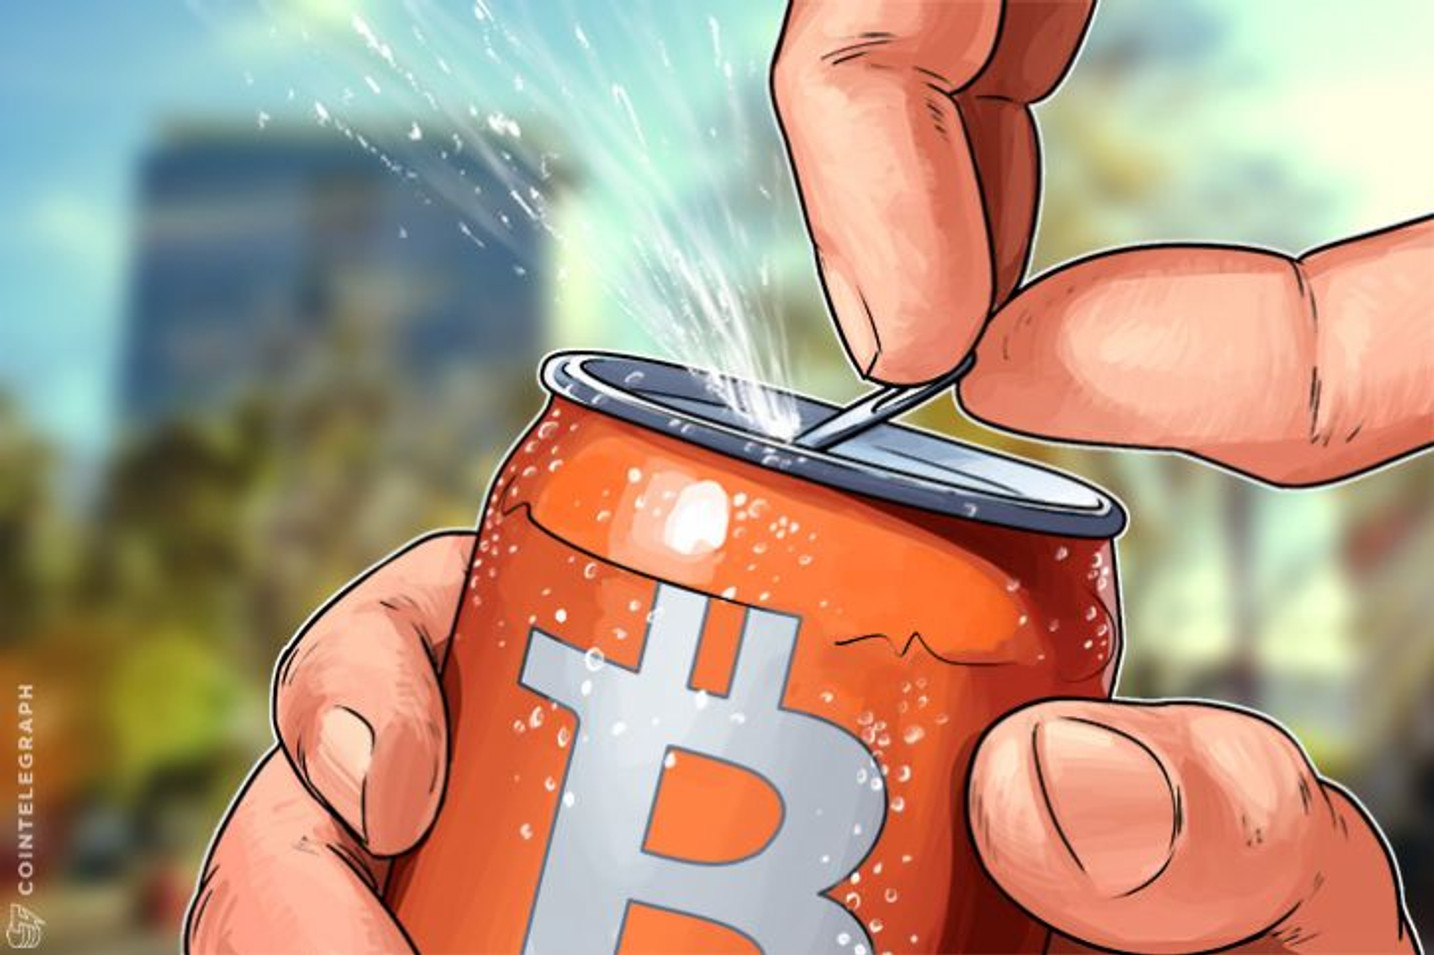 Bitcoin Price Lingers Below $6k As Post-Fork Altcoin Rally Expected